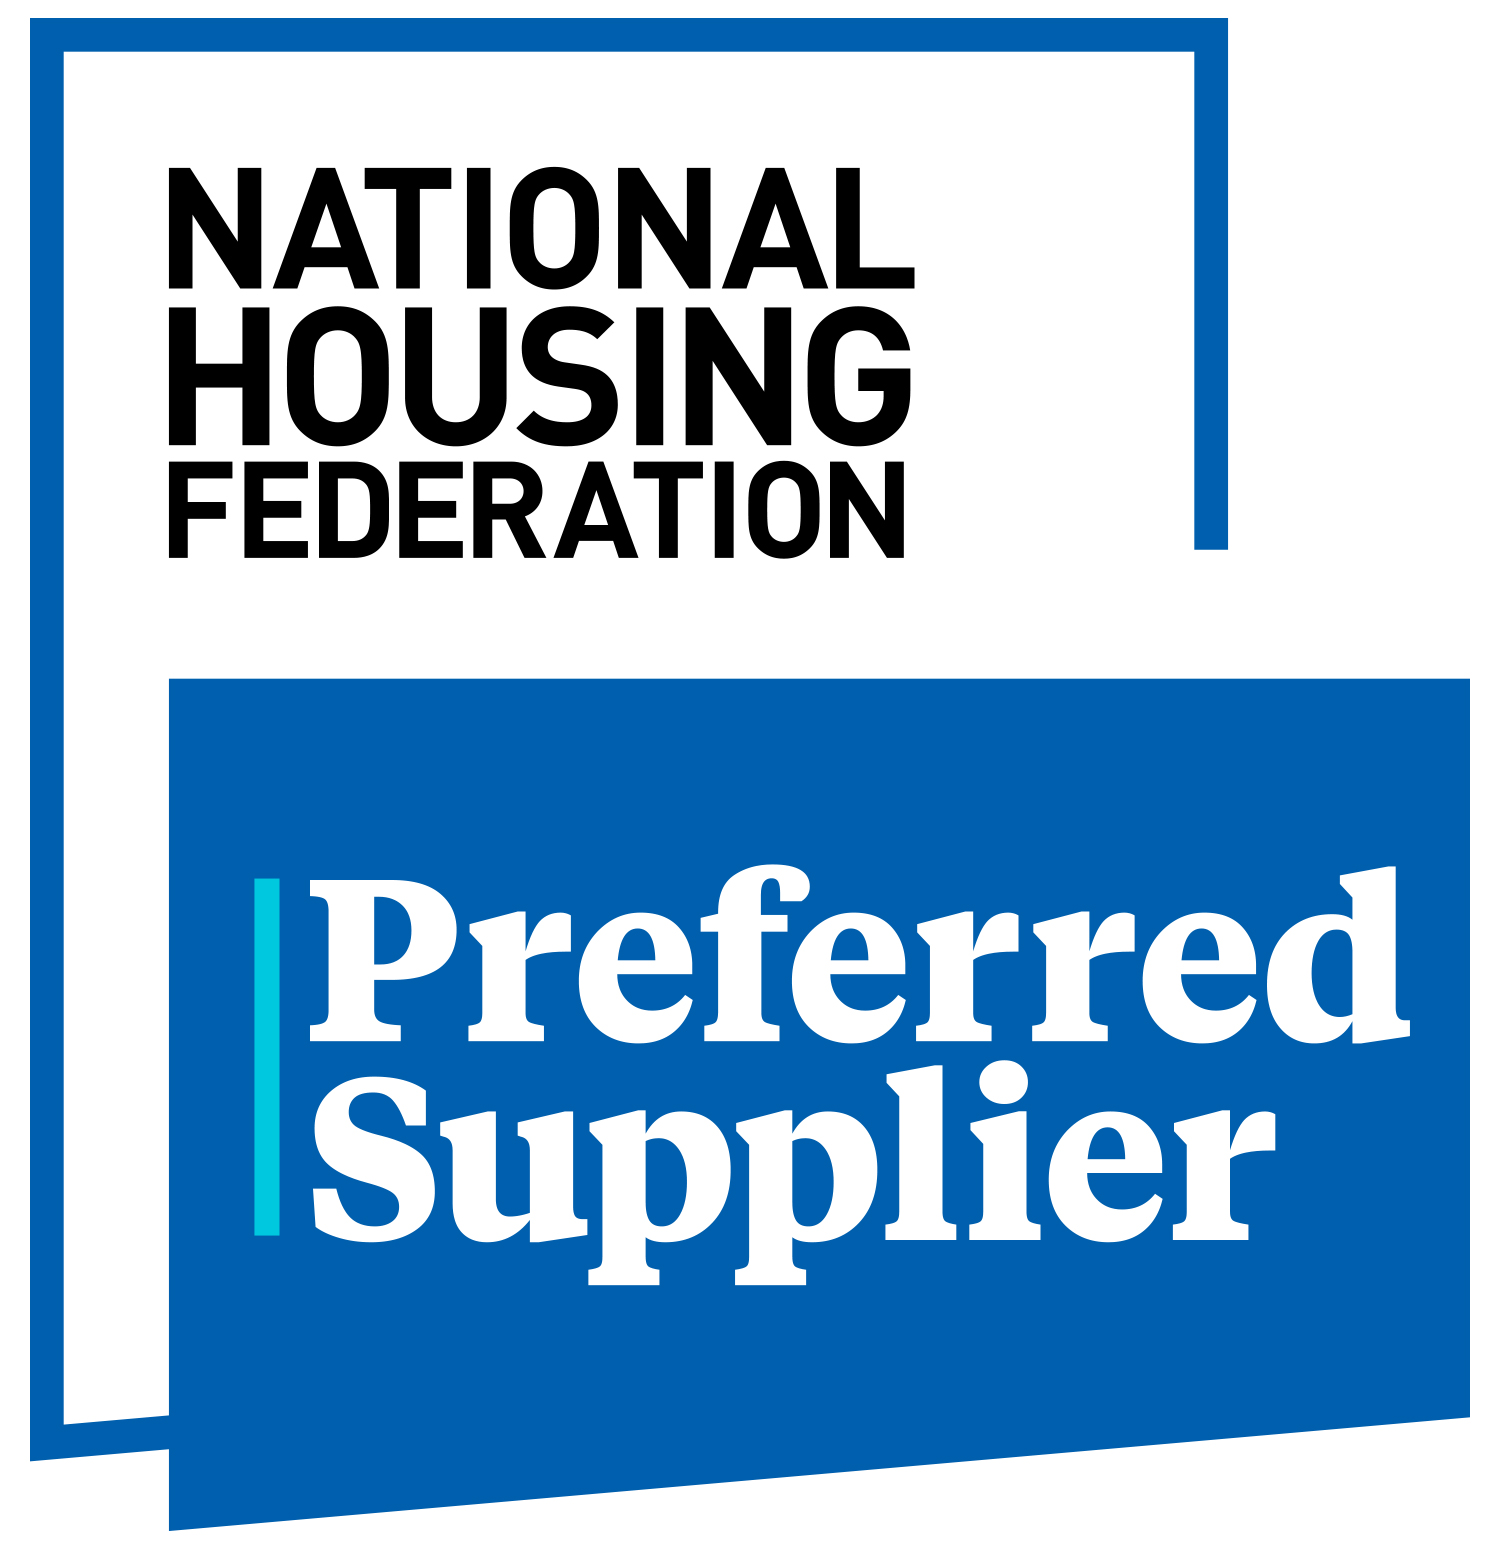 National Housing Federation Preferred Supplier